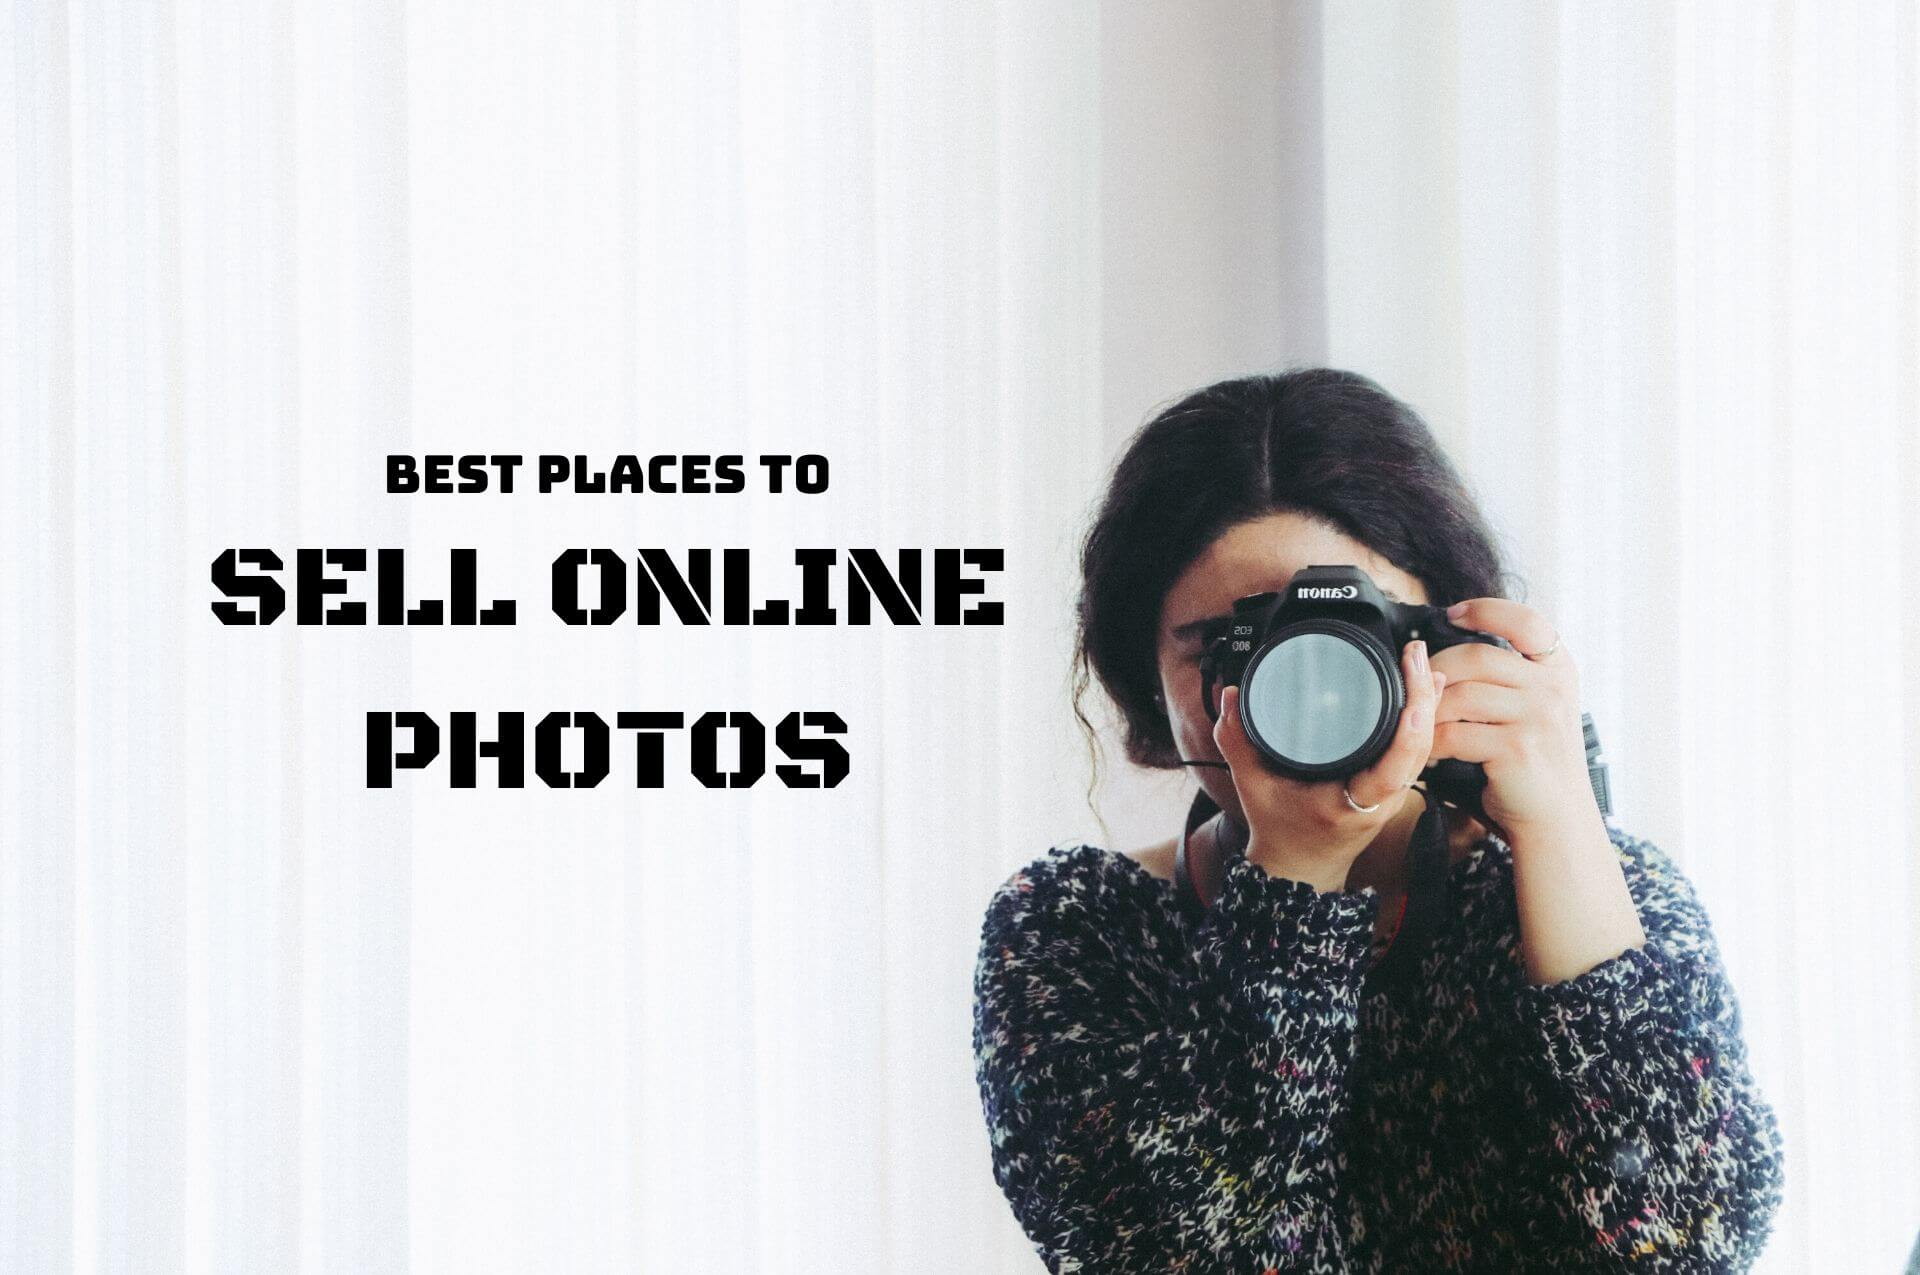 sell online photos